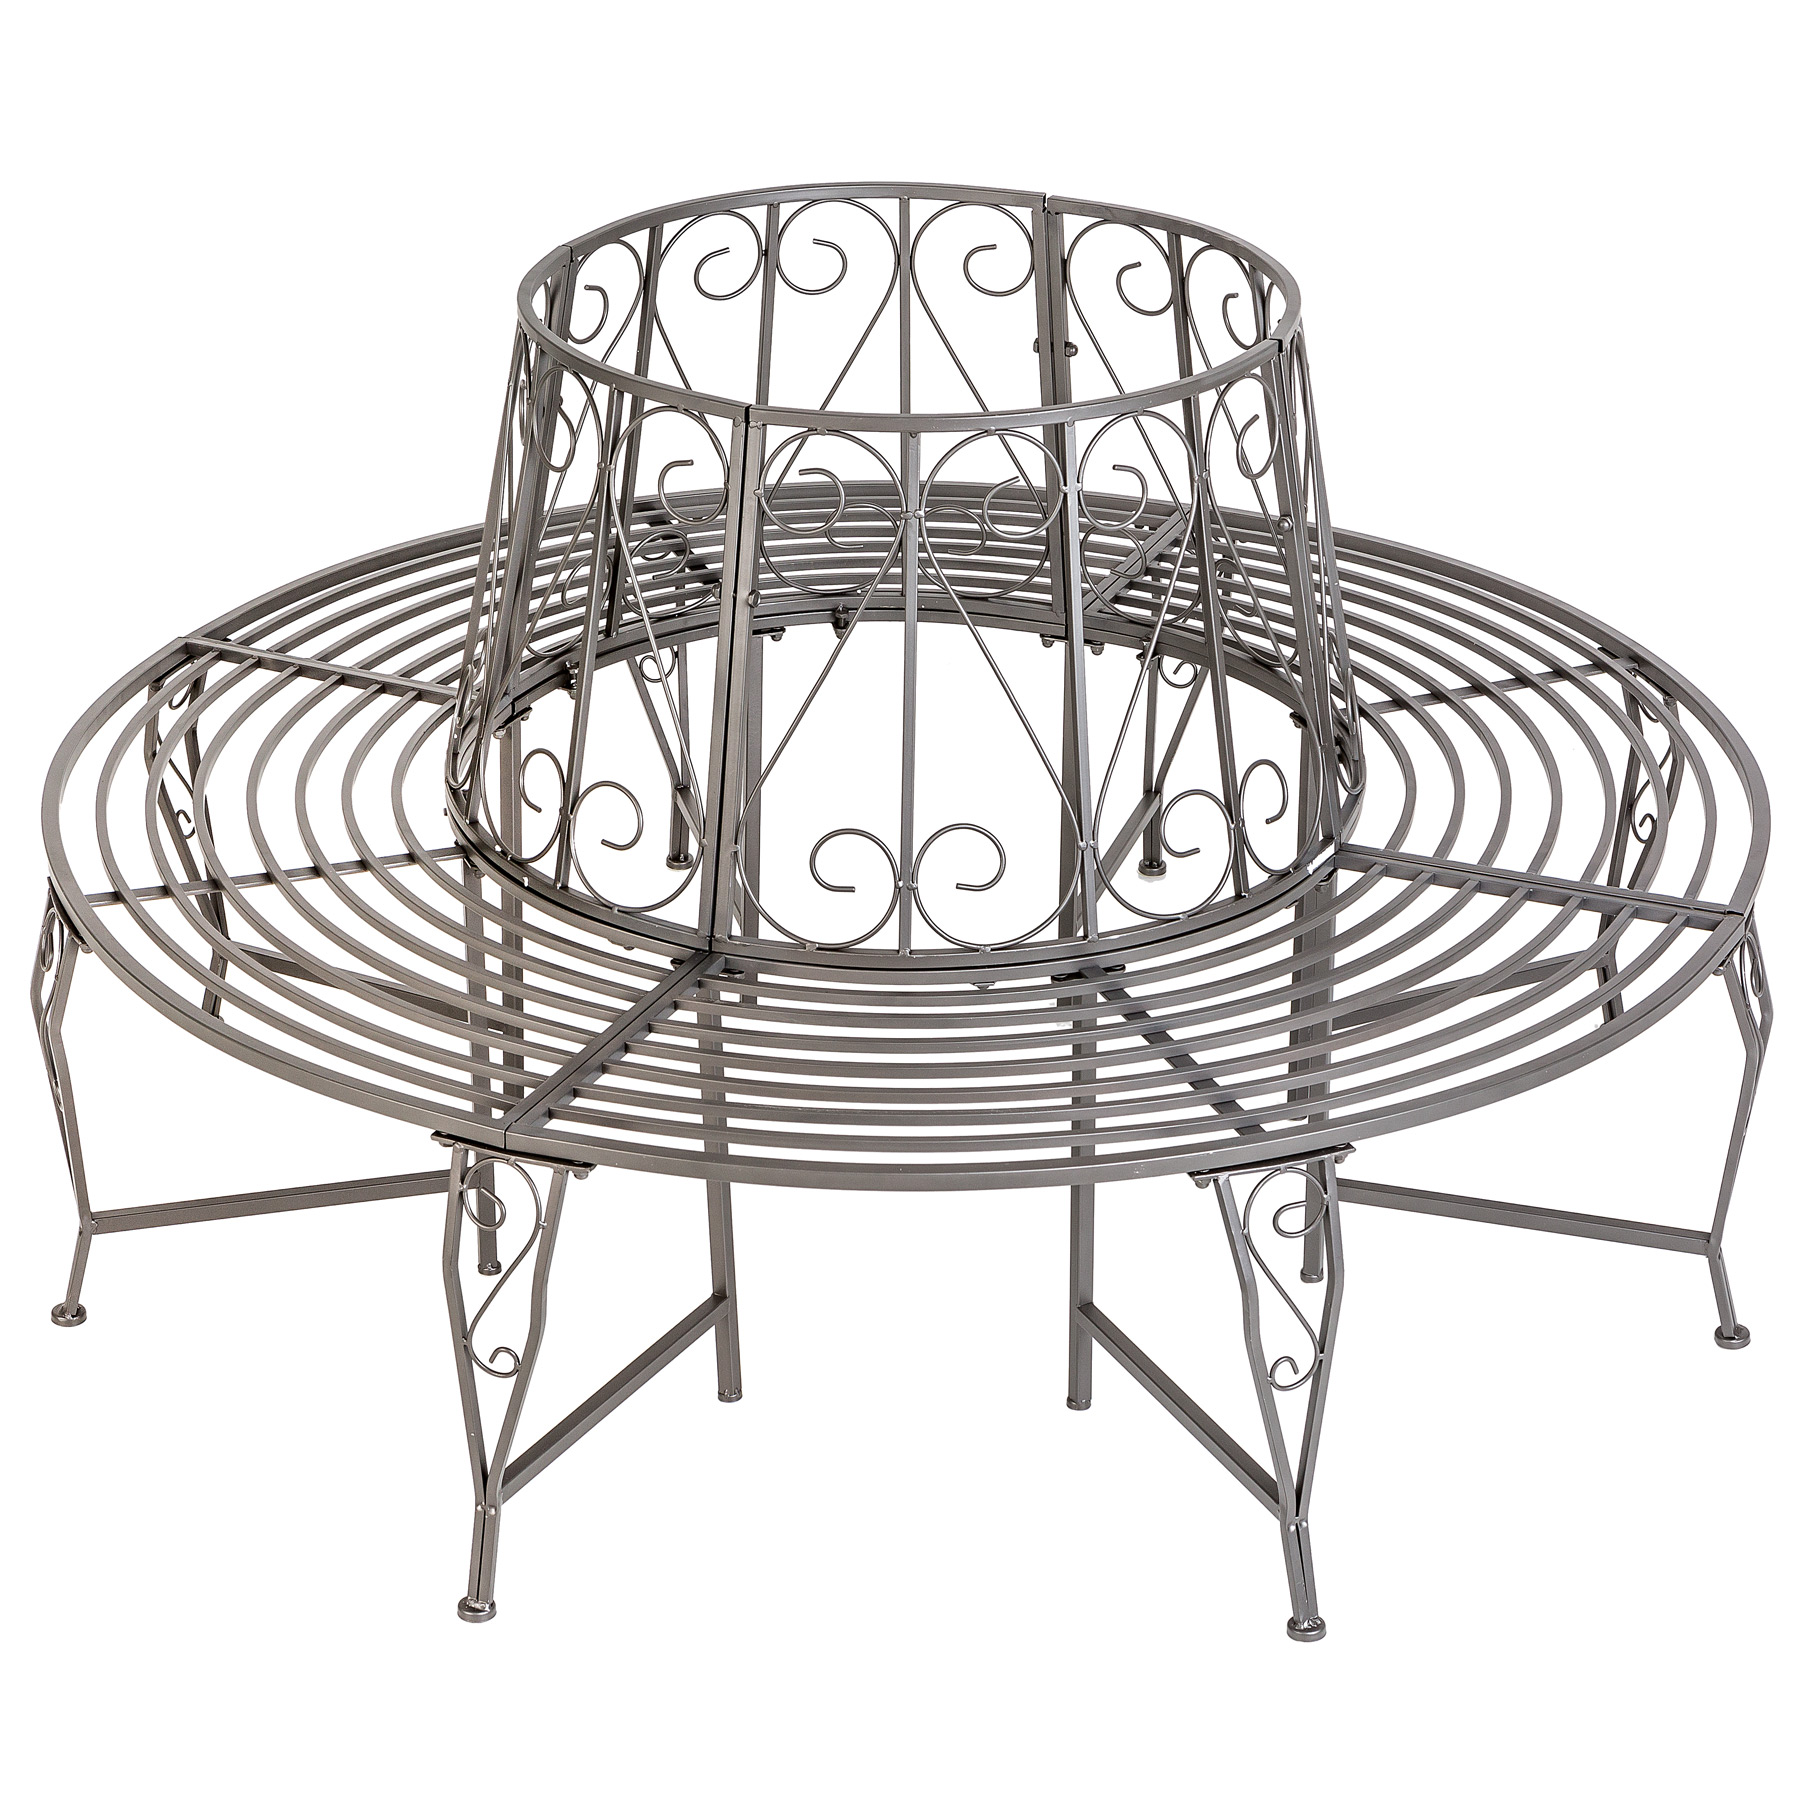 Garden tree bench seat round steel circular antique furniture half anthracite ebay - Banc de jardin en metal ...